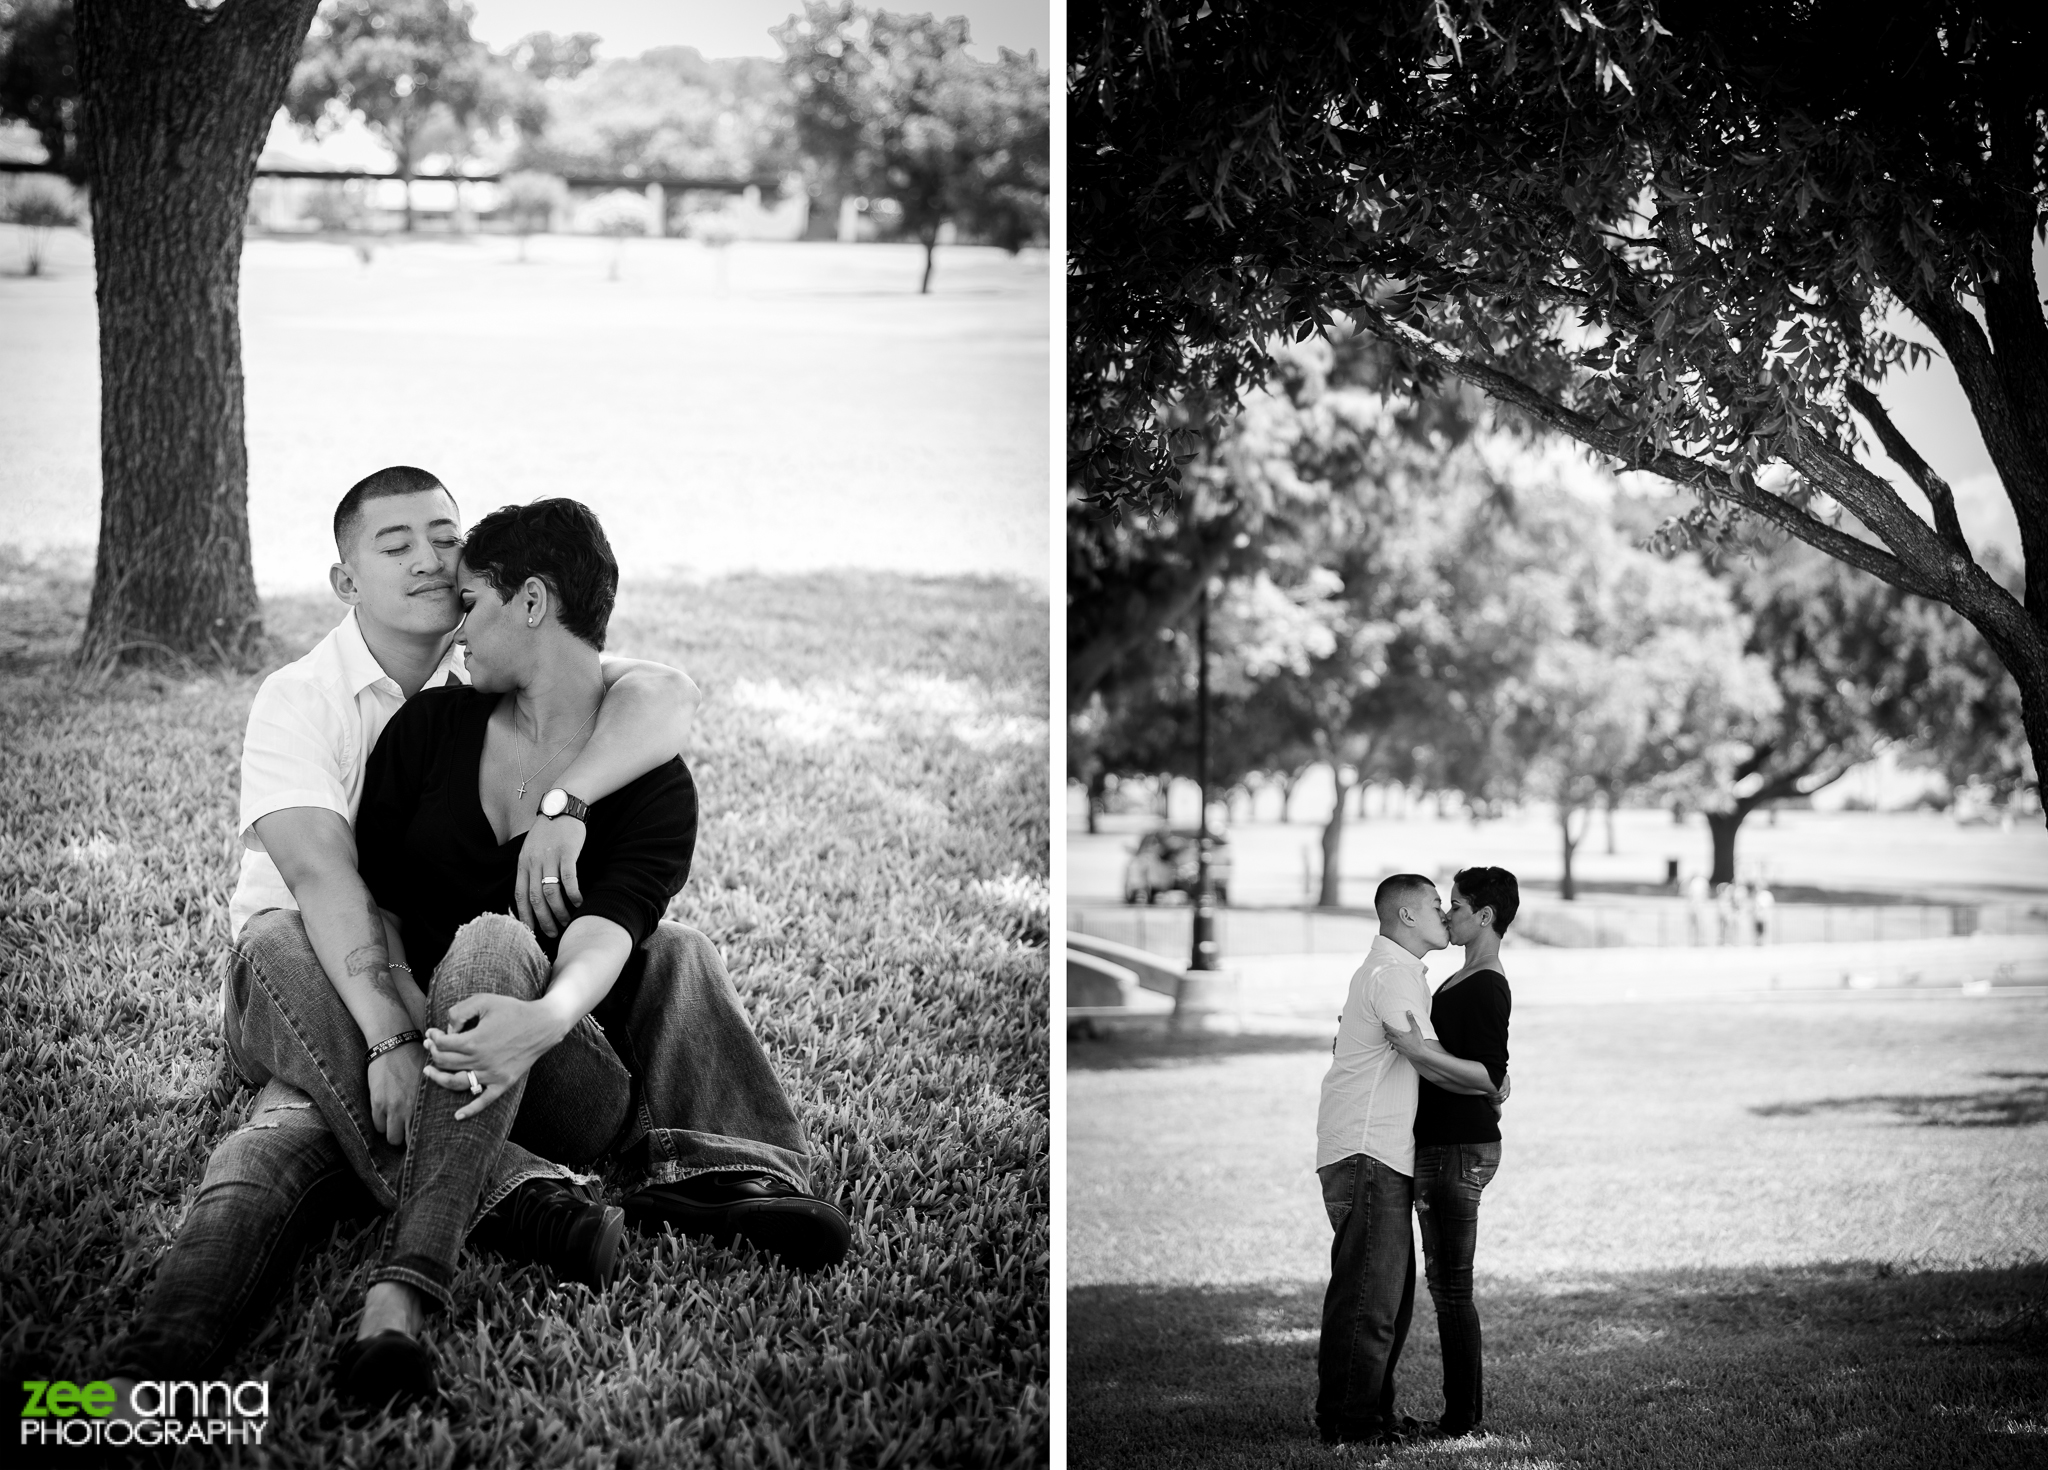 BLOG-Joe&Katessa-TexasWeddingCeremony-17